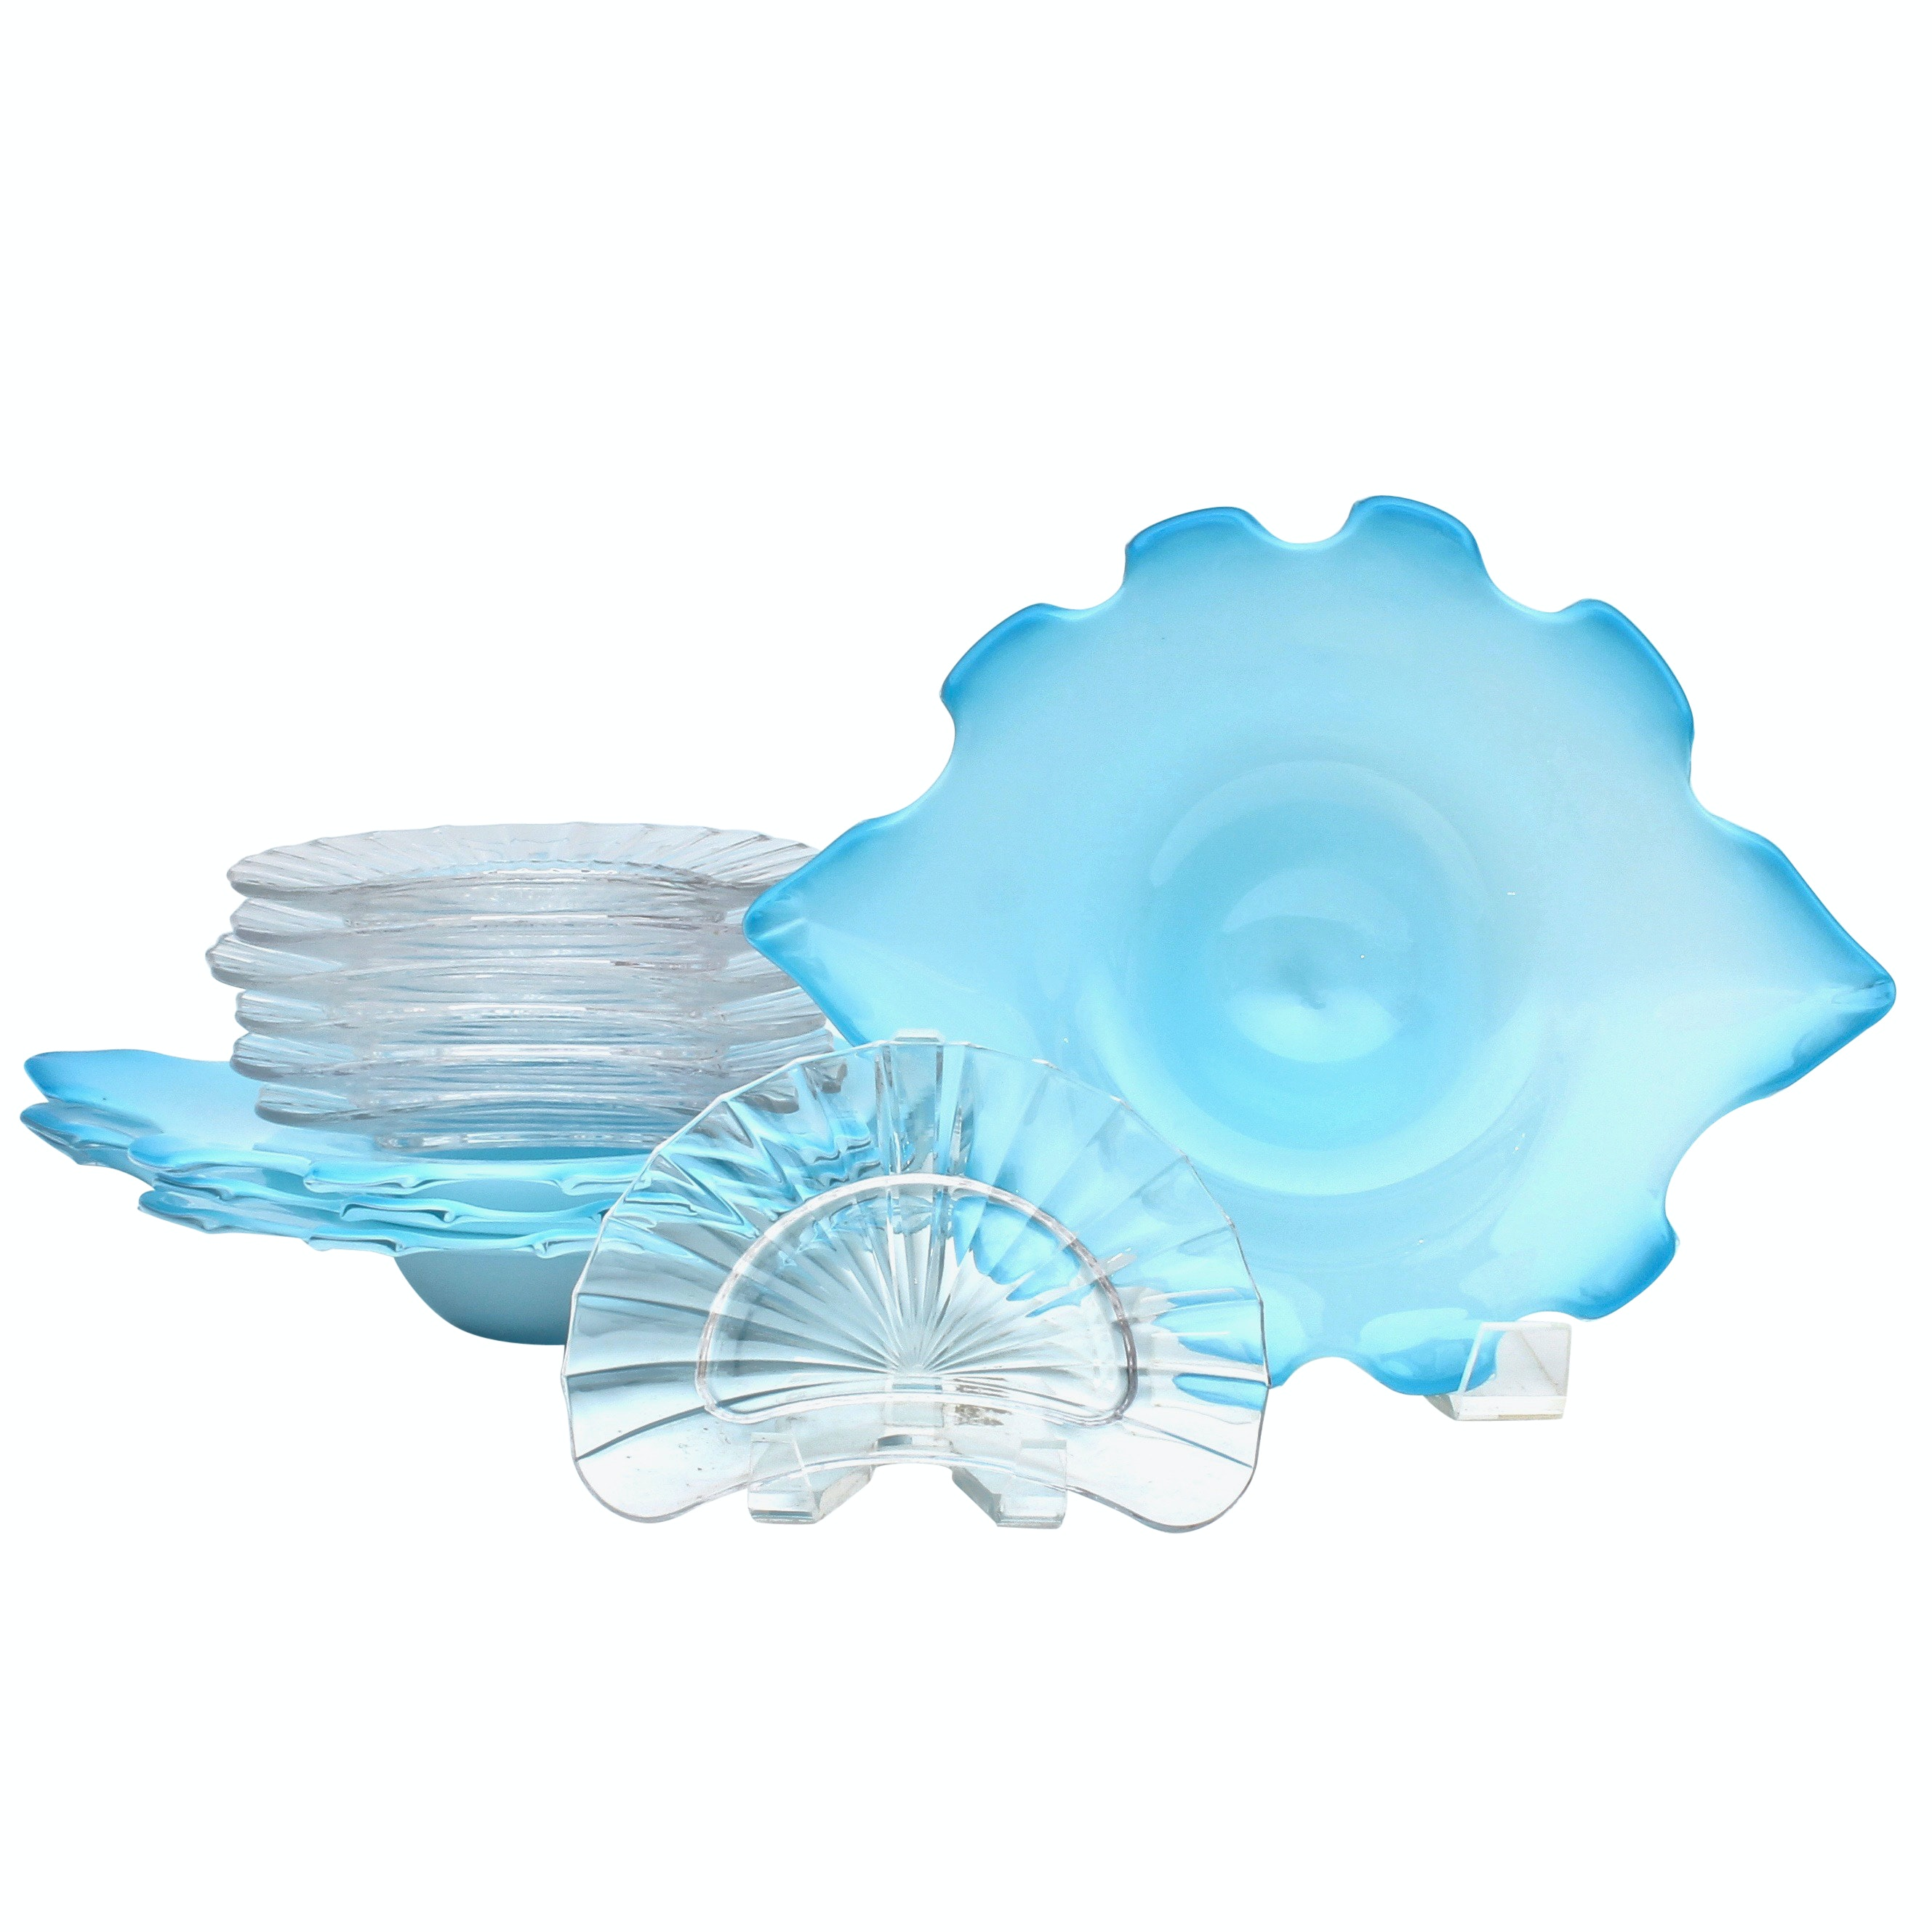 Paloma Picasso for Villeroy & Boch and Blue Glass Tableware